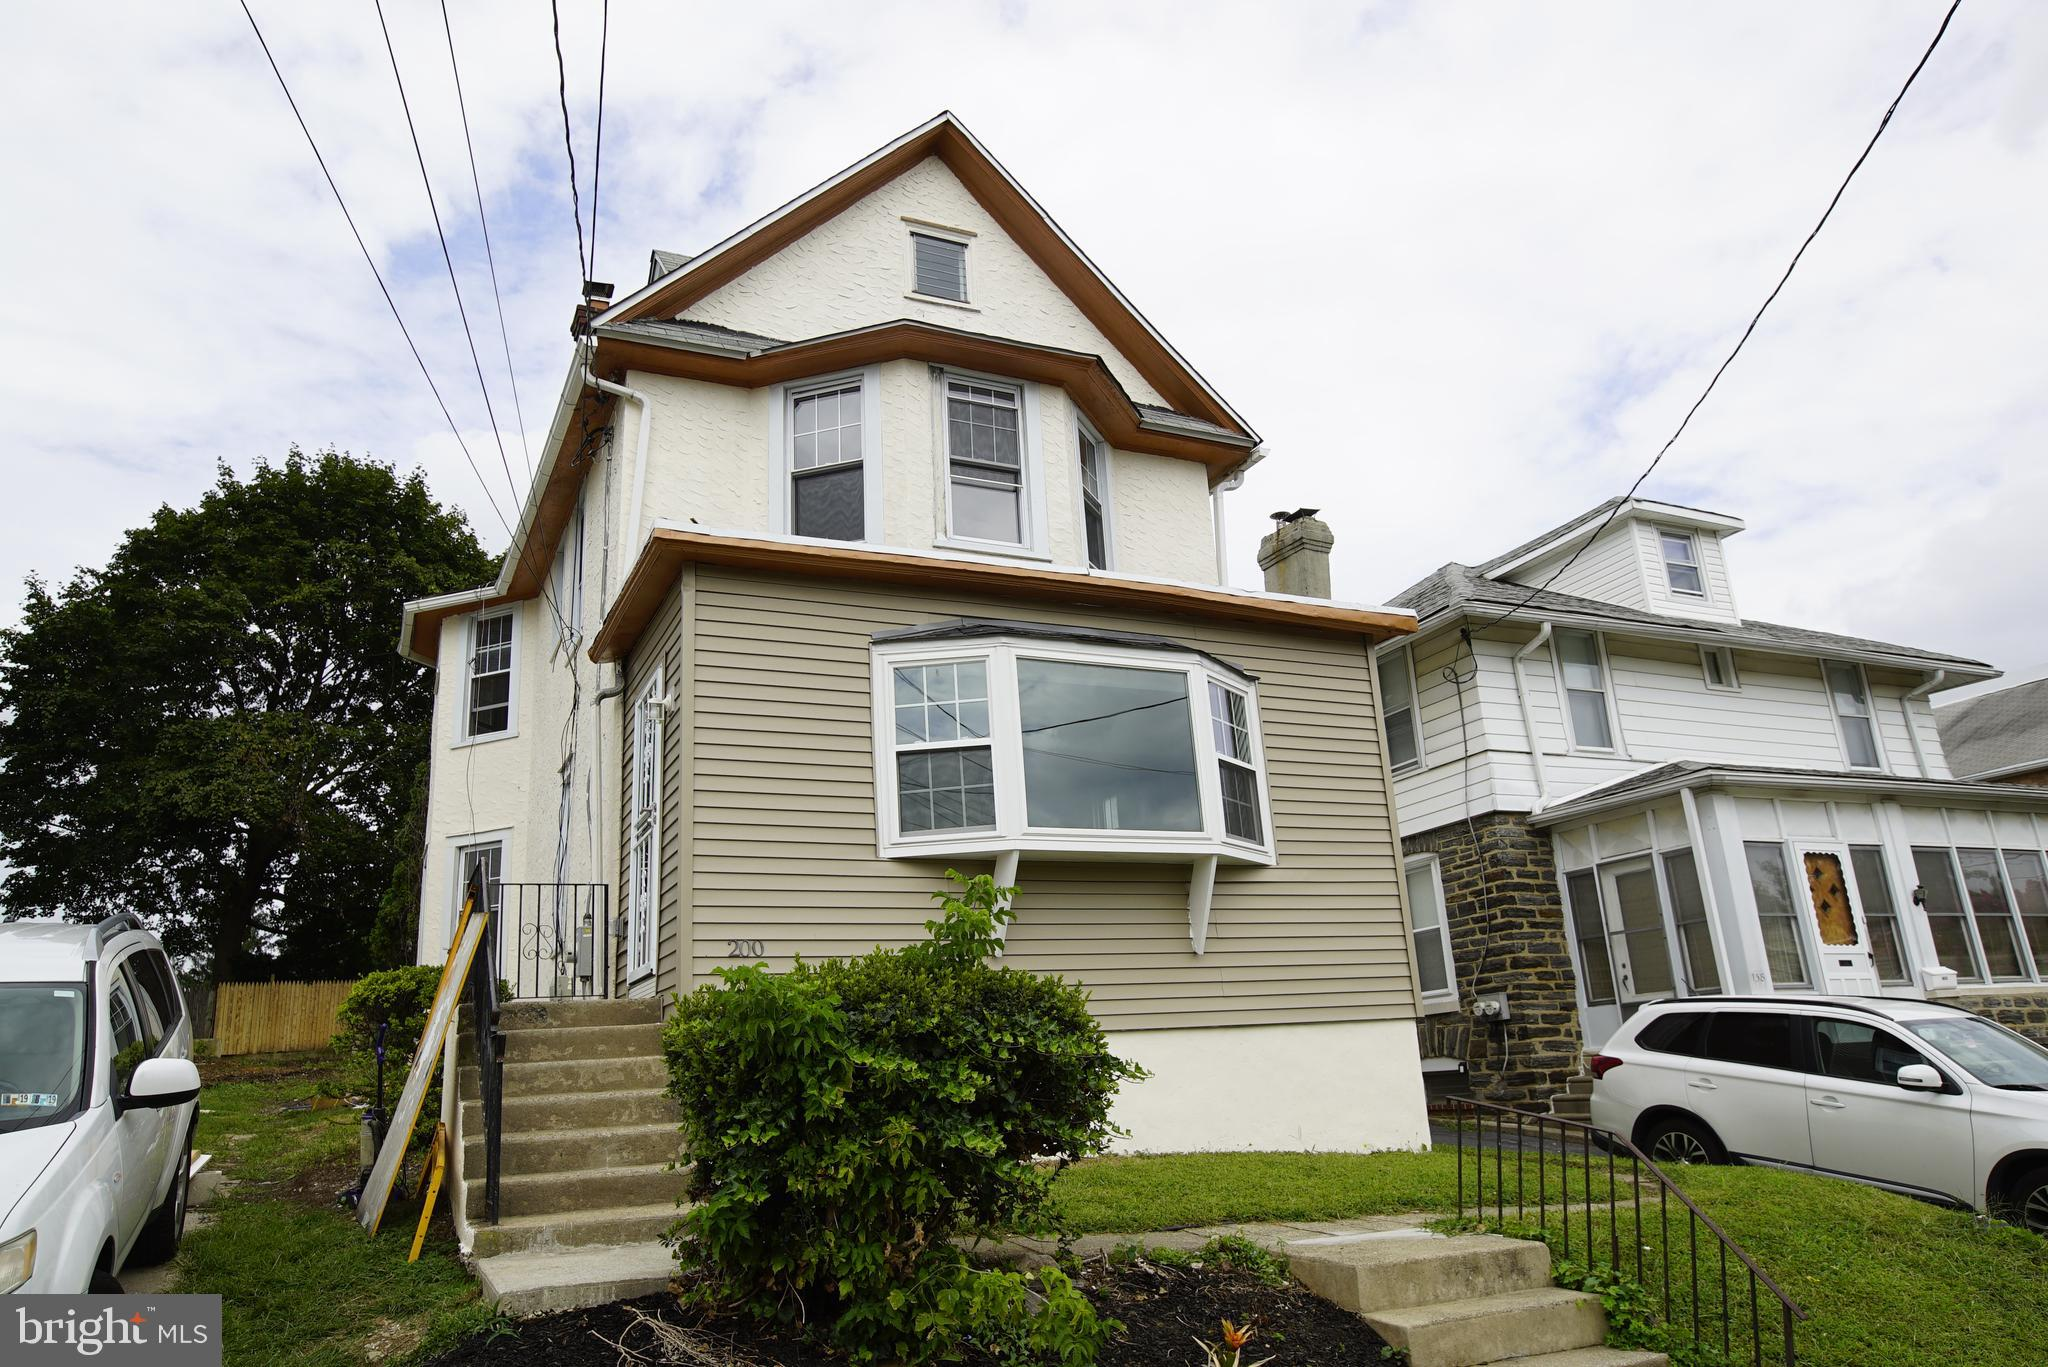 200 ARDMORE AVENUE, UPPER DARBY, PA 19082